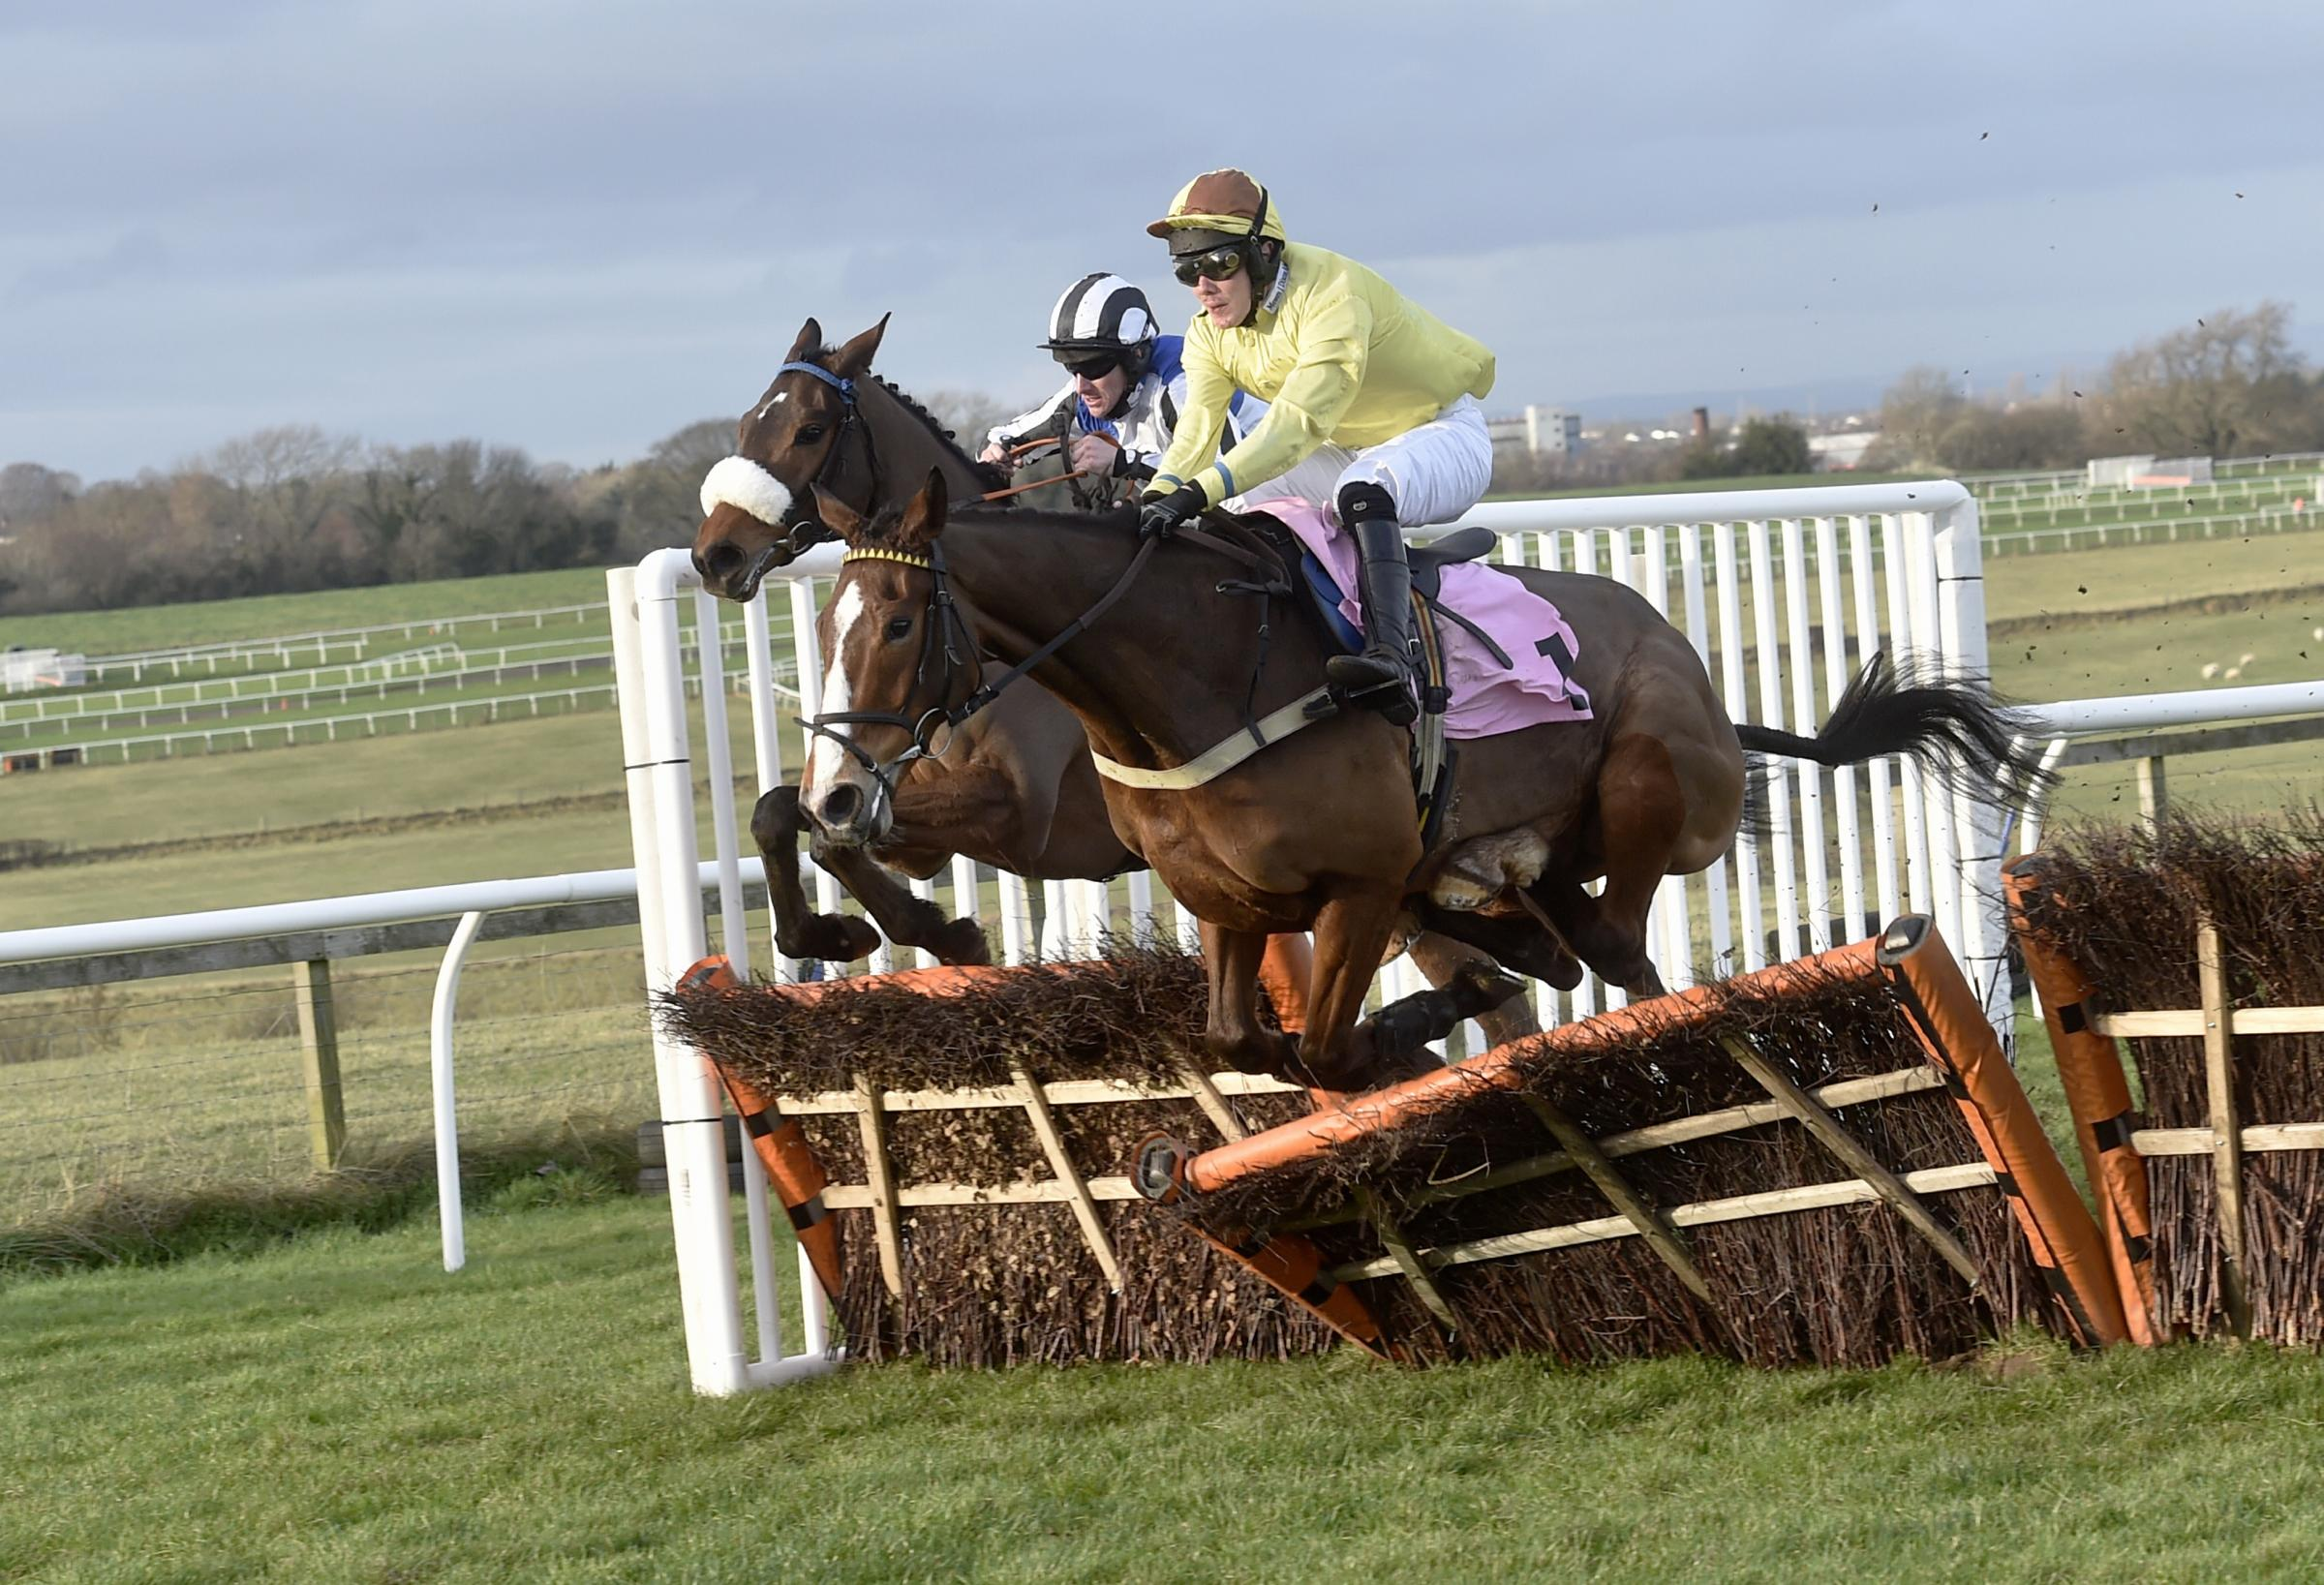 Flying: Captain Zebo, ridden by jockey John Dixon in the yellow top, is pictured coming over the final flight to win The Smarkets National Hunt Novices' Hurdle Race (Photo: Louise Porter)